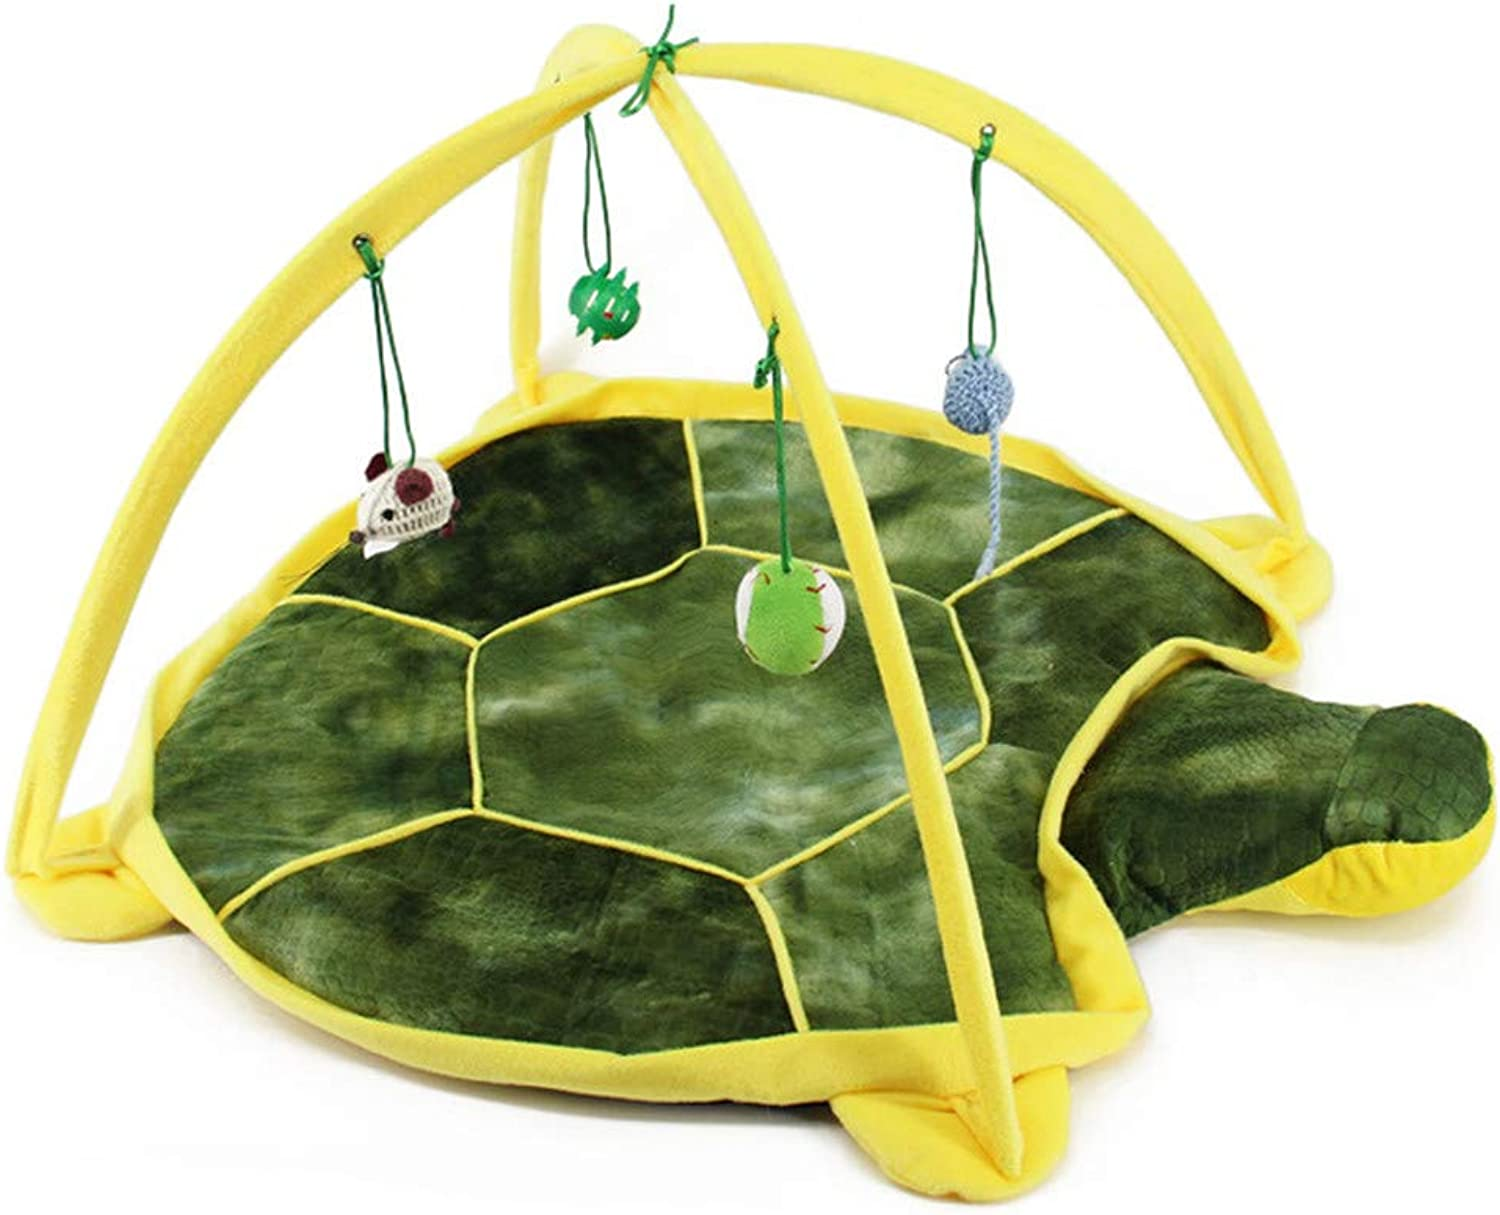 Cat Toy Pet Cat Tent Cartoon Animal Design Safety Material Collapsible Hanging Small Toy Game Bed Amusement Park Cabin Villa Exercise Game,Brown